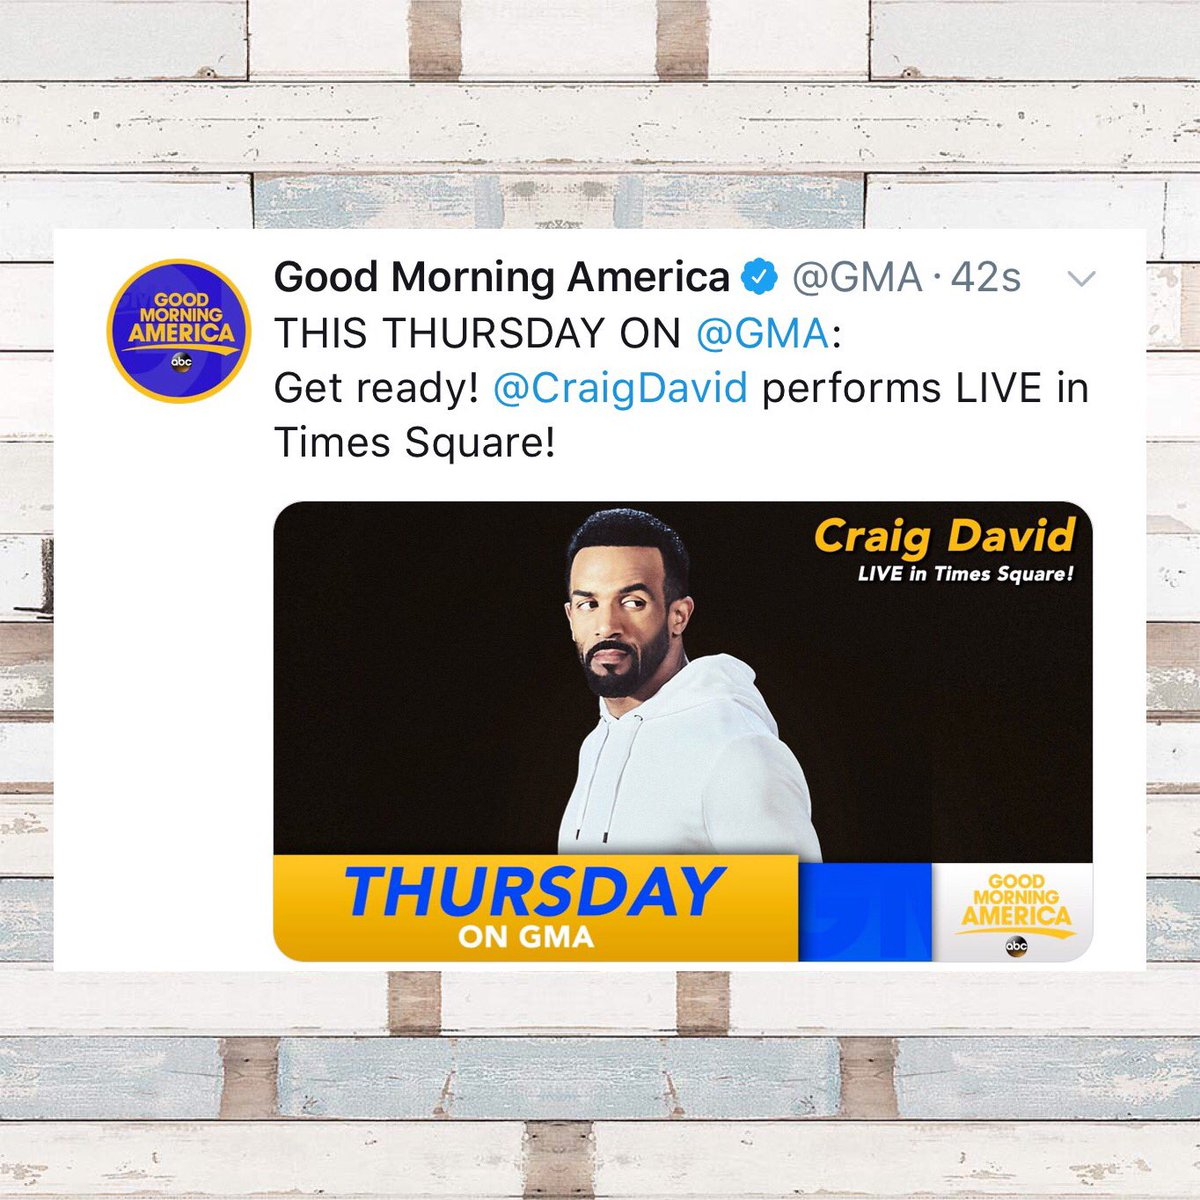 What a time to be alive ✨ @GoodMorningAmerica #TheTimeIsNOW ✨ https://t.co/Bwdi05PLBb